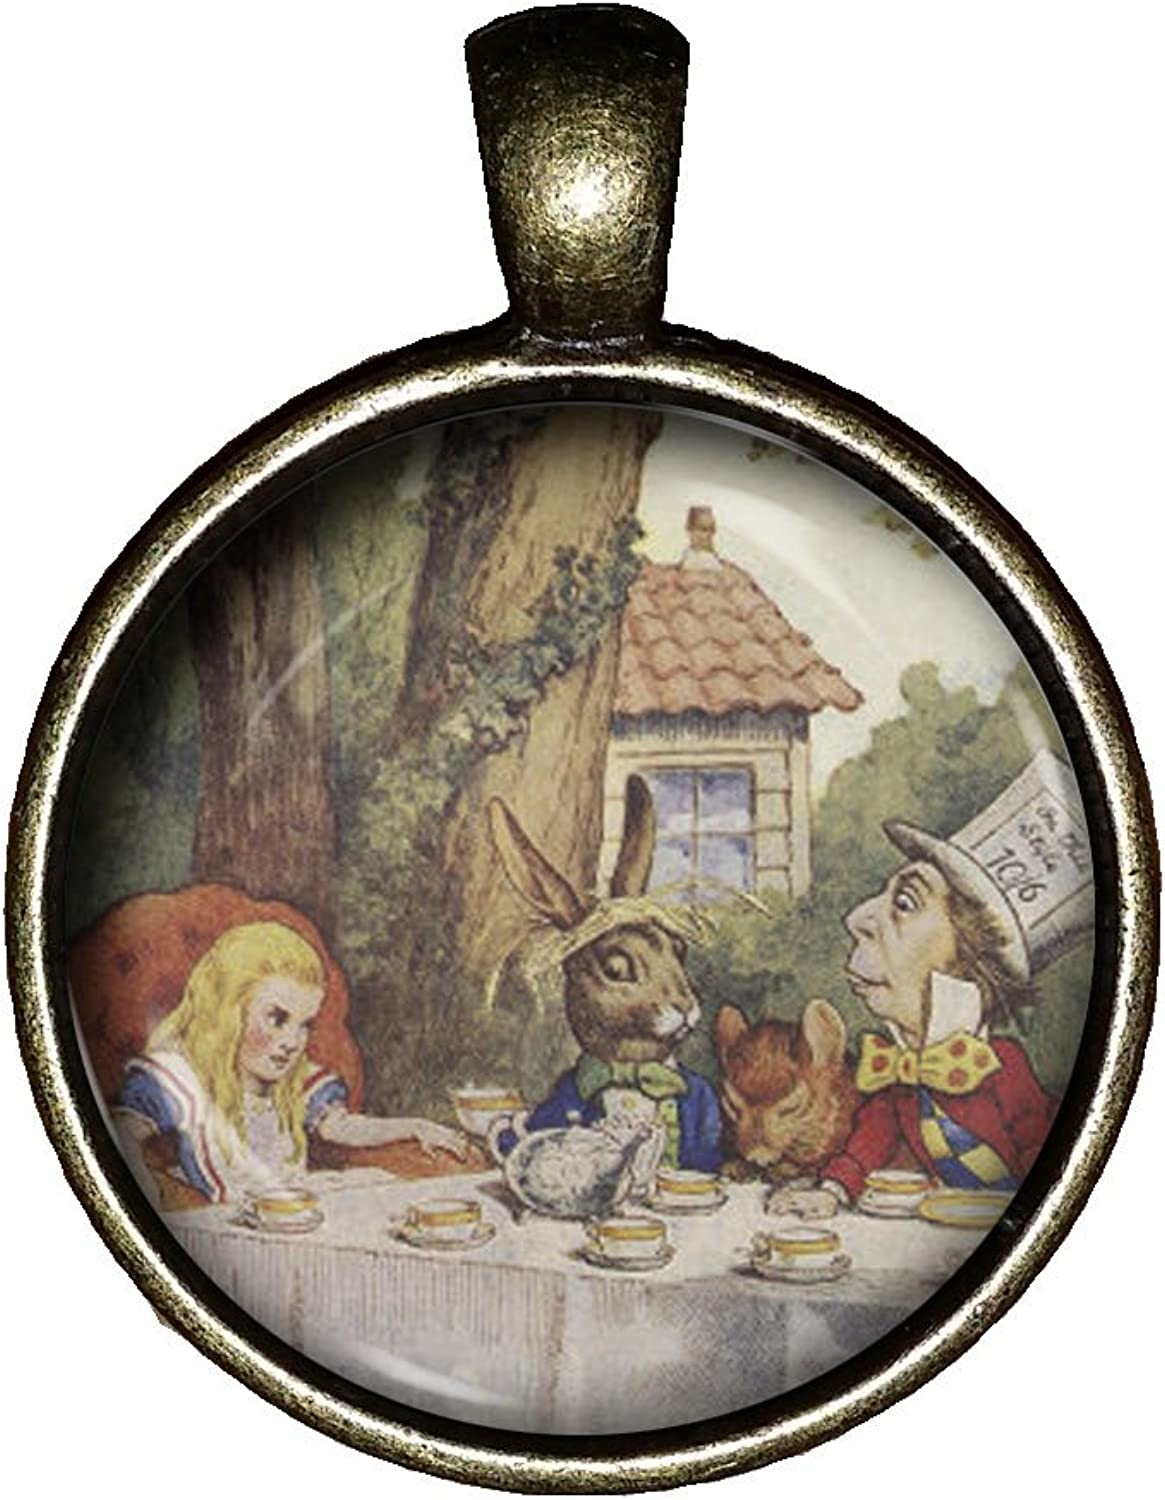 Alice in Wonderland Necklace Handmade Mad Hatter Tea Party Jewelry Gift Pendant Charm Novel Lewis Carroll